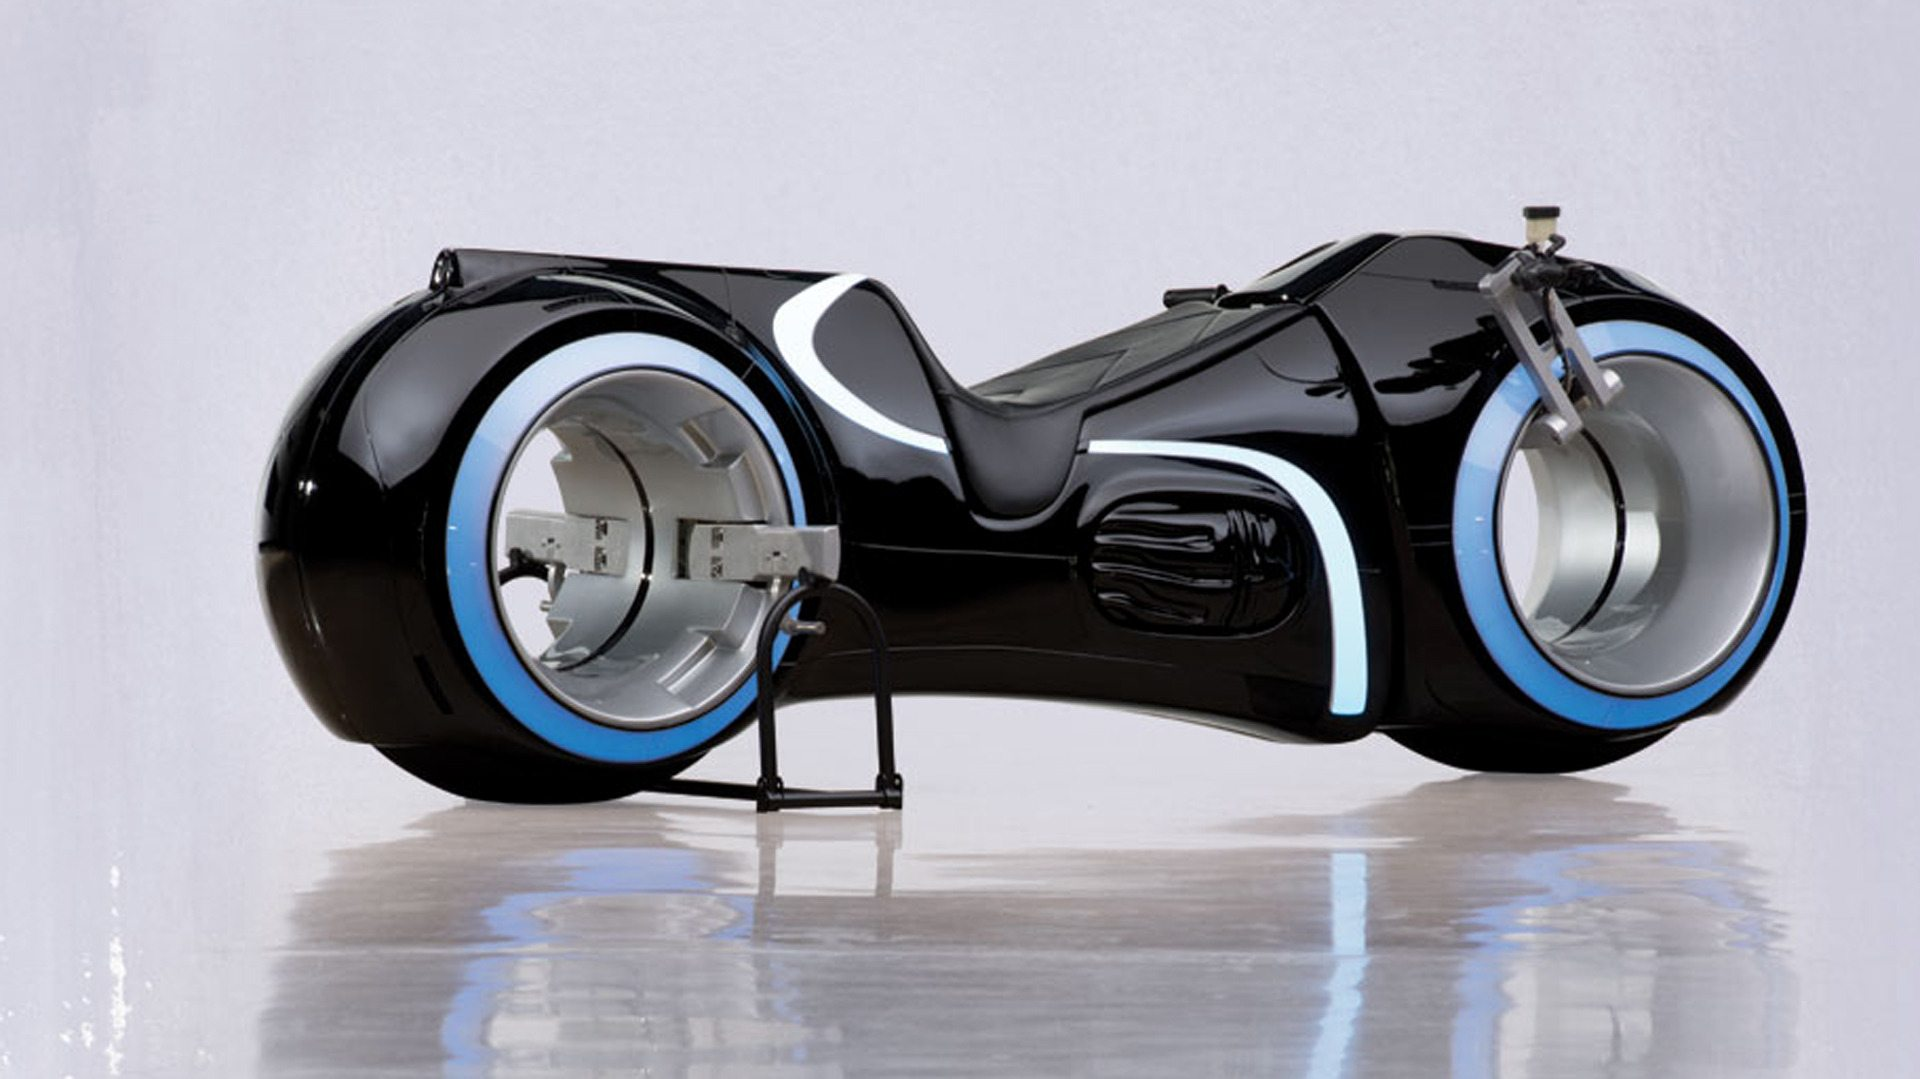 tron-light-cycle-77000_expensive-motorcycles